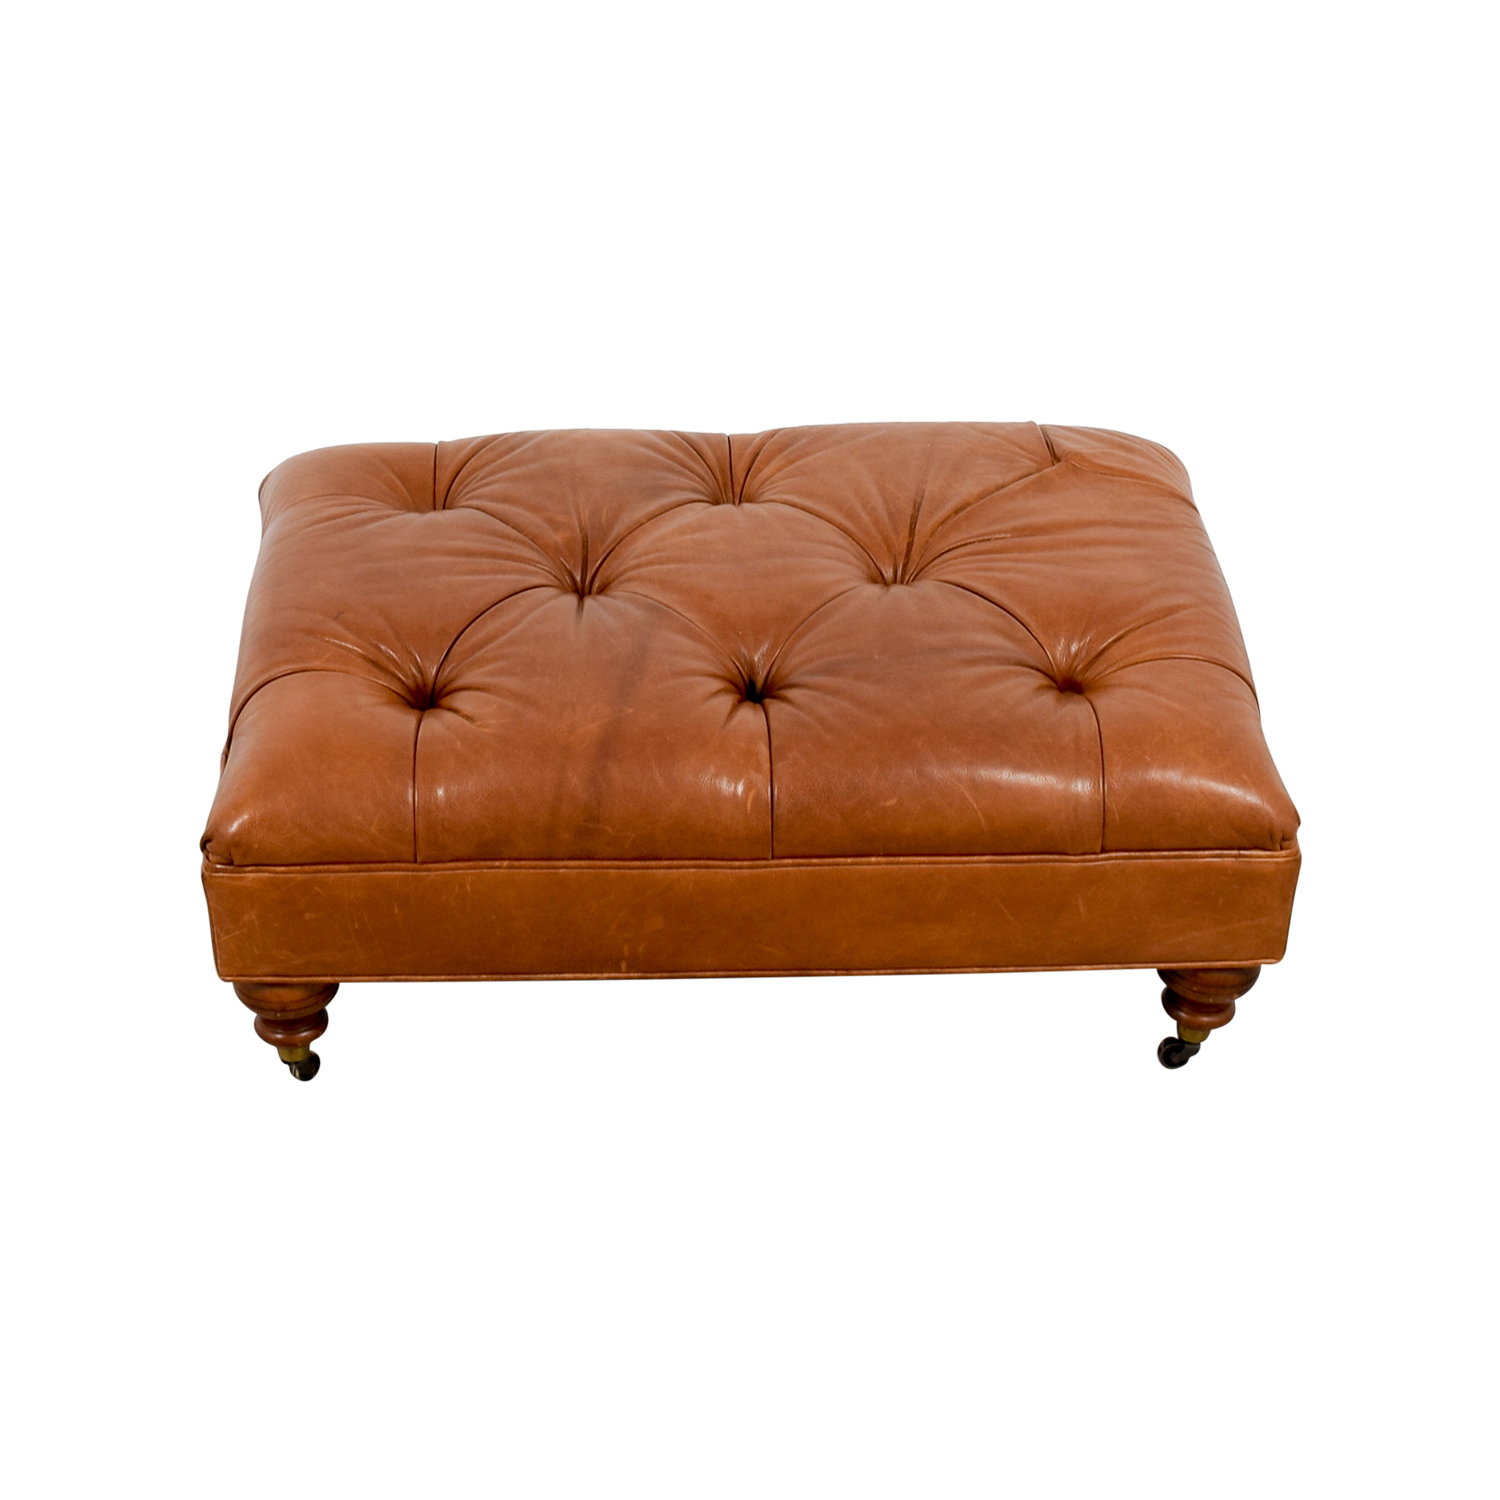 Ethan Allen Ethan Allen Anton Tufted Leather Ottoman for sale